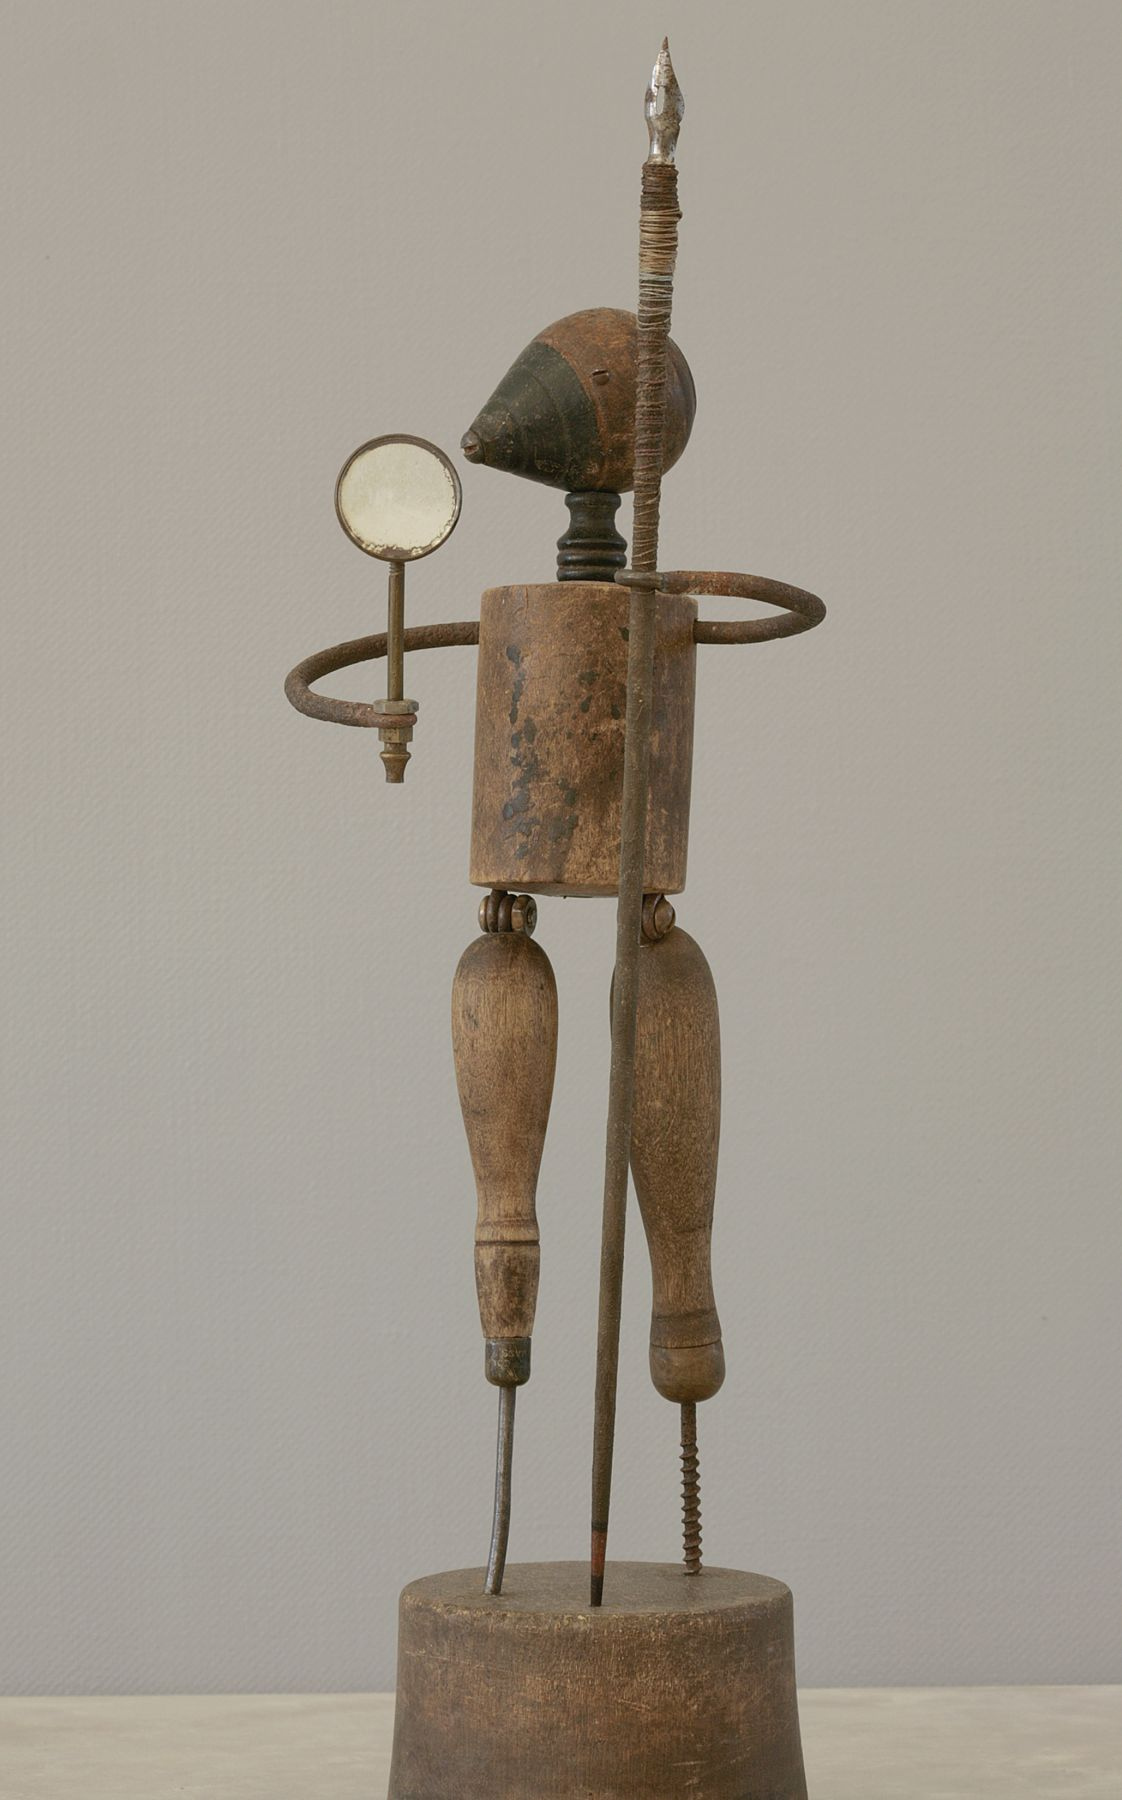 Alan Magee, Improbable Monument, 2009, mixed media, 14.75 x 5 x 5.5 inches